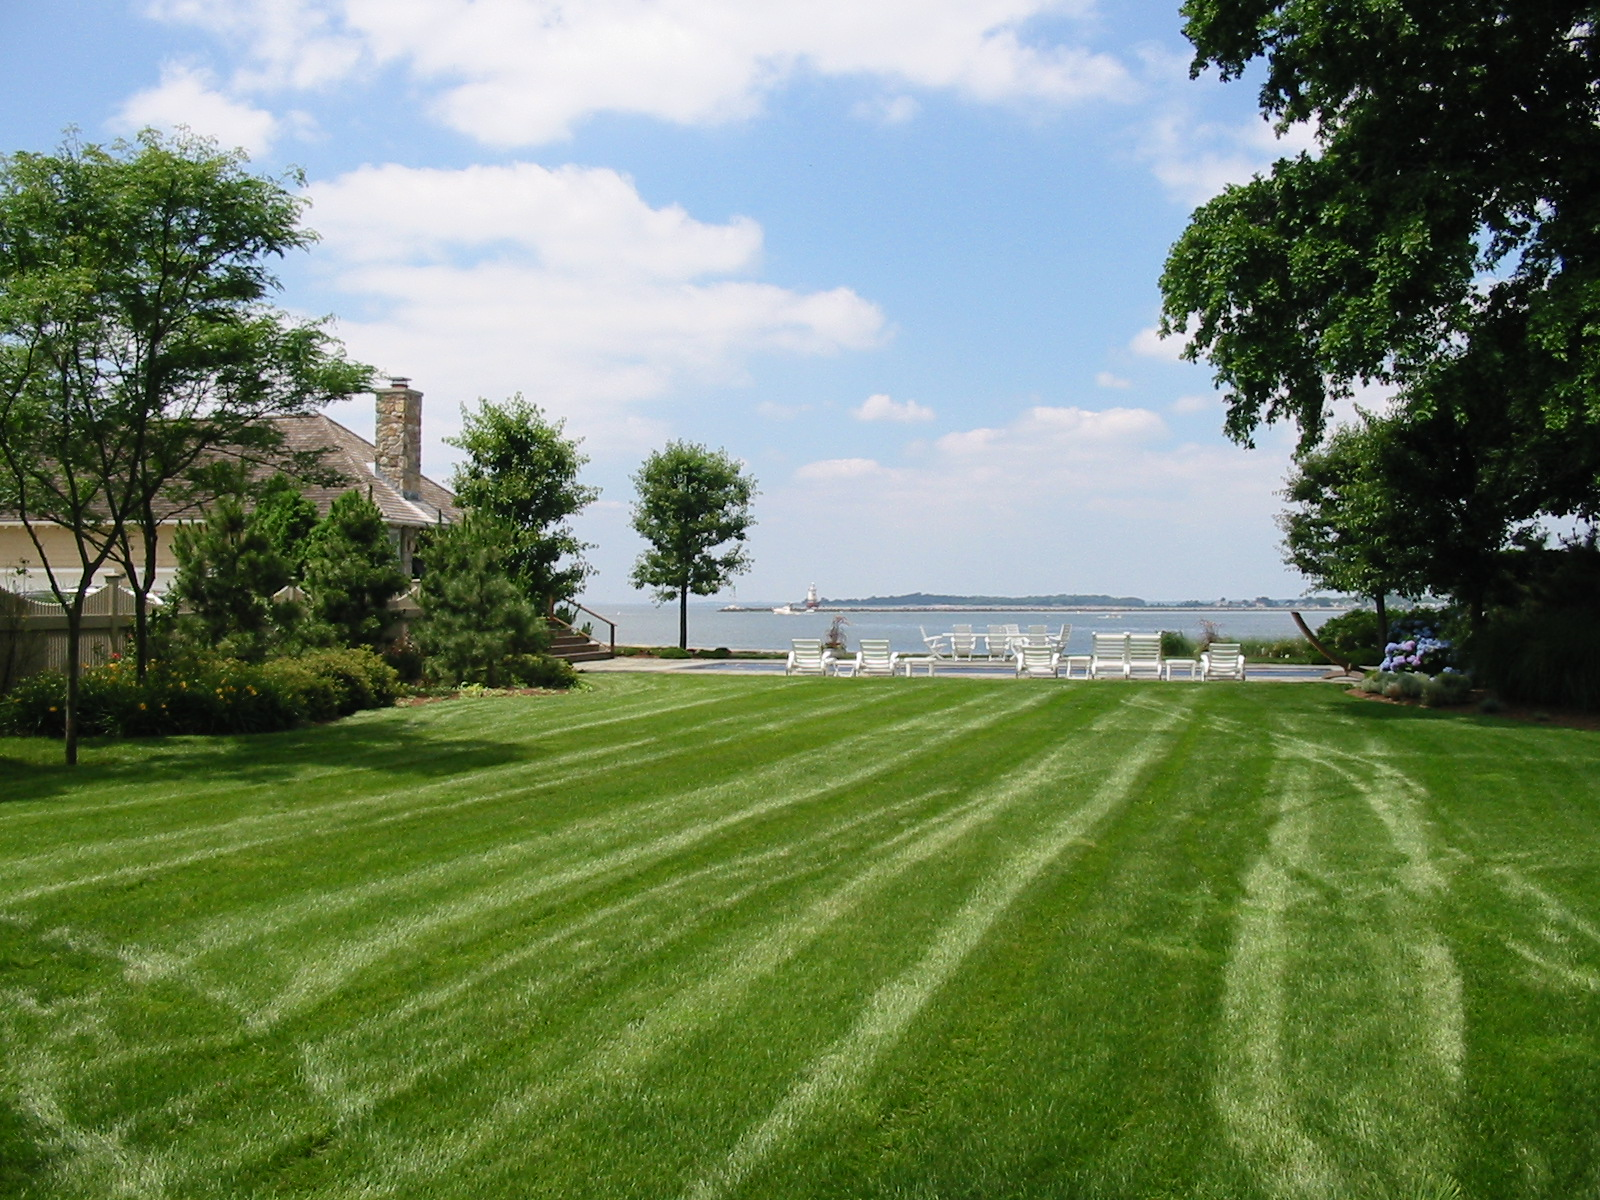 Bay View overlooking Great Lawn